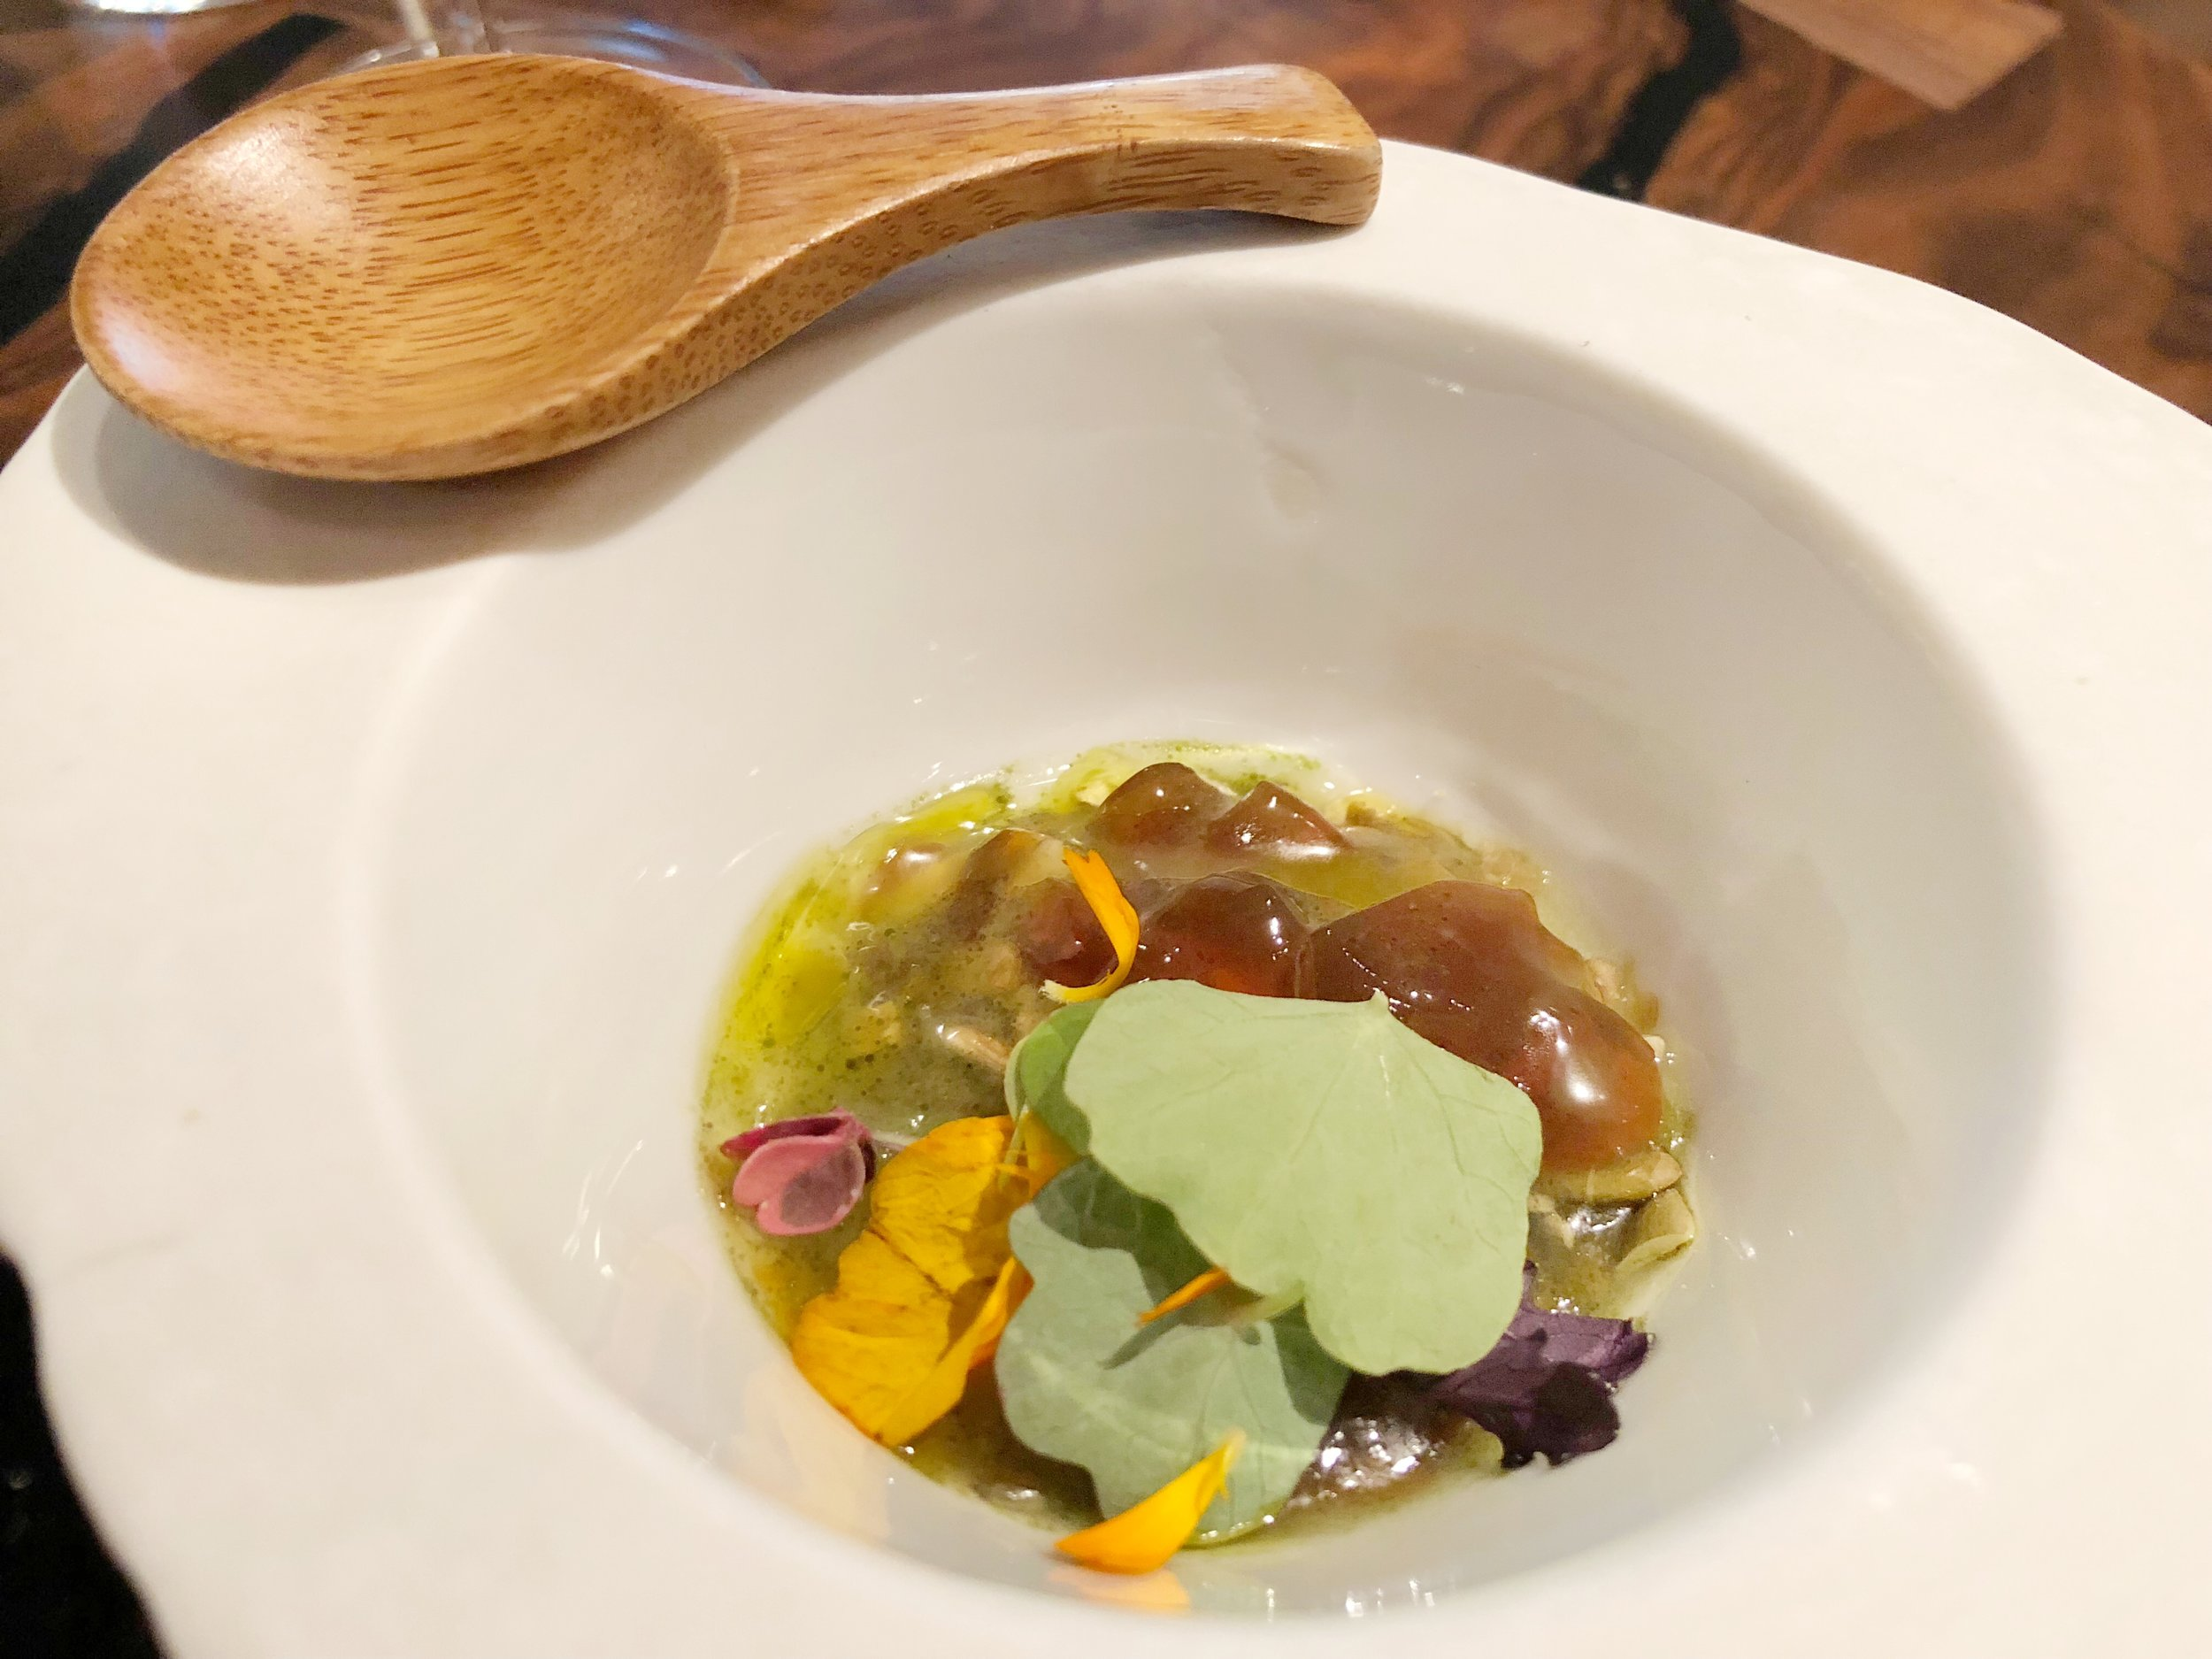 To bury in fallen leaves my treasures of the earth and sea - Seed & GrainSmoked buckwheat, quinoa soil, smoked trout roe (bottarga), and smoked sturgeon pearls with a warm bonito dashi broth. This course was rich and comforting.